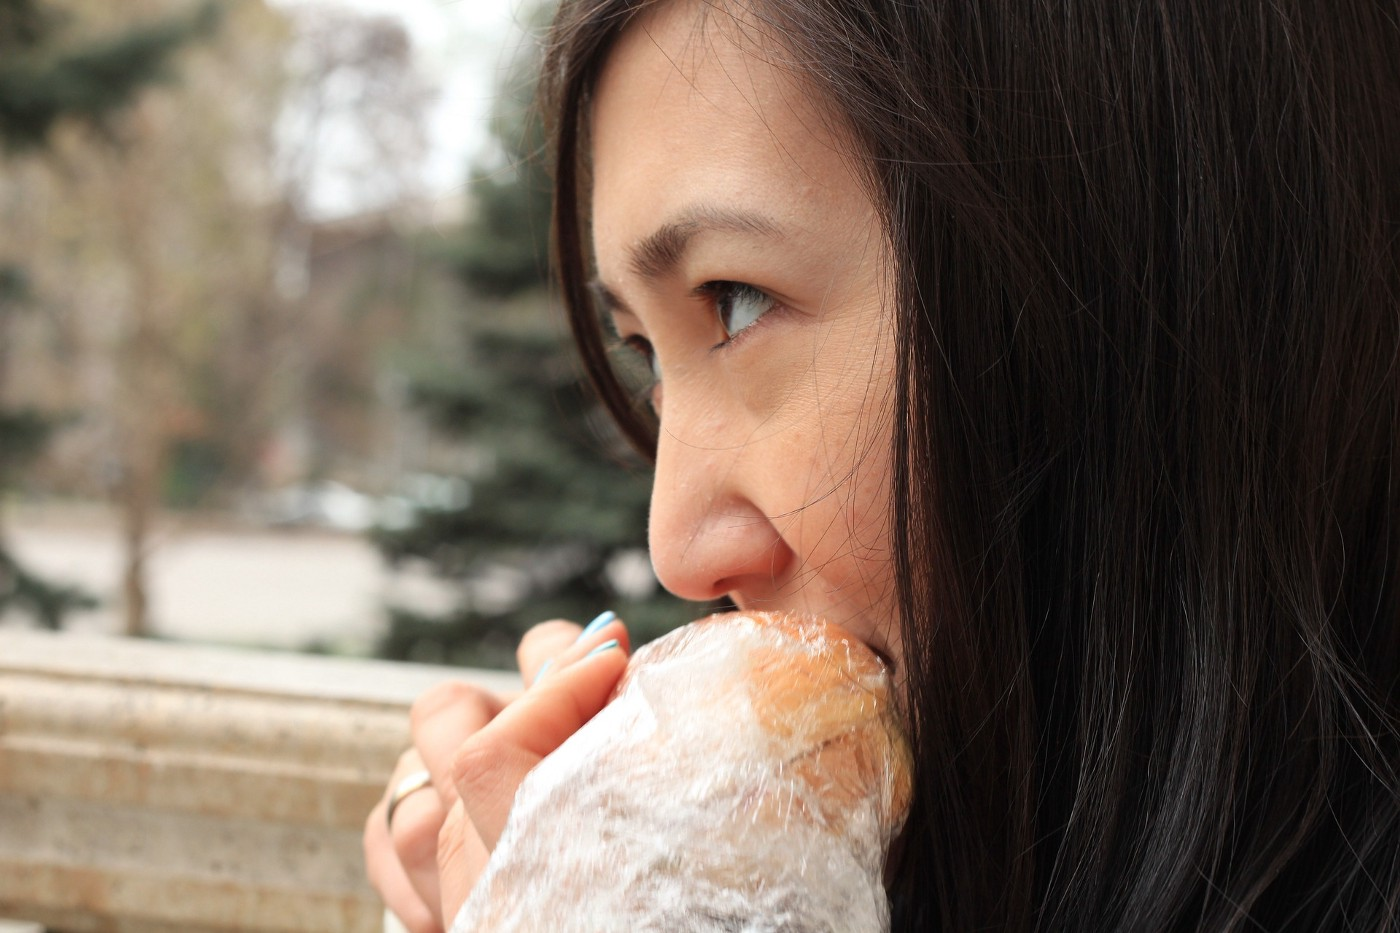 A white woman with dark hair eating a sandwich outdoors